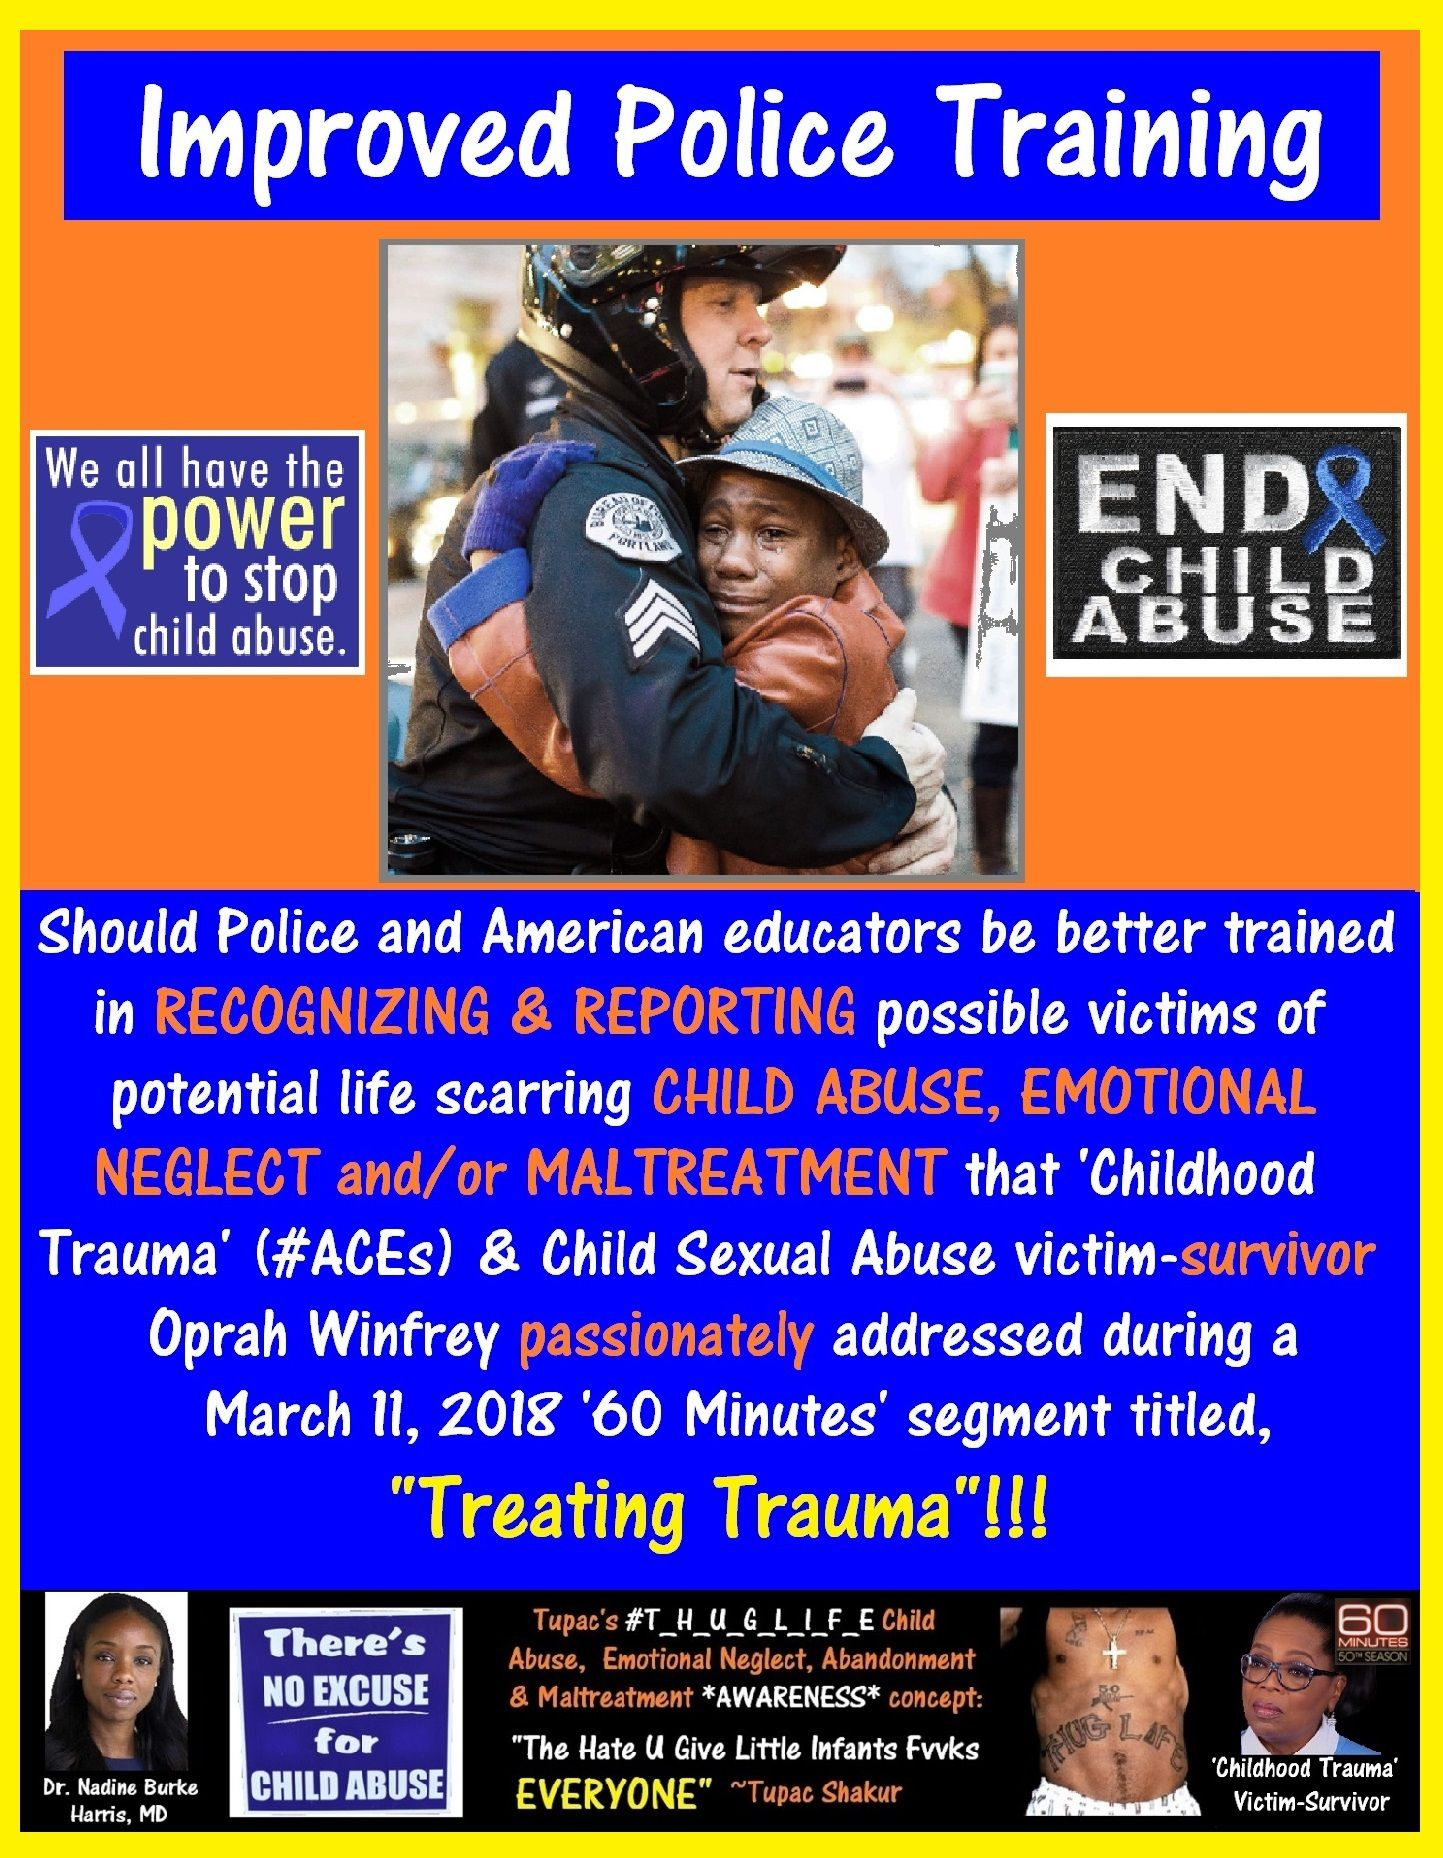 POLICE EDUCATOR TRAINING CHILD ABUSE.jpg